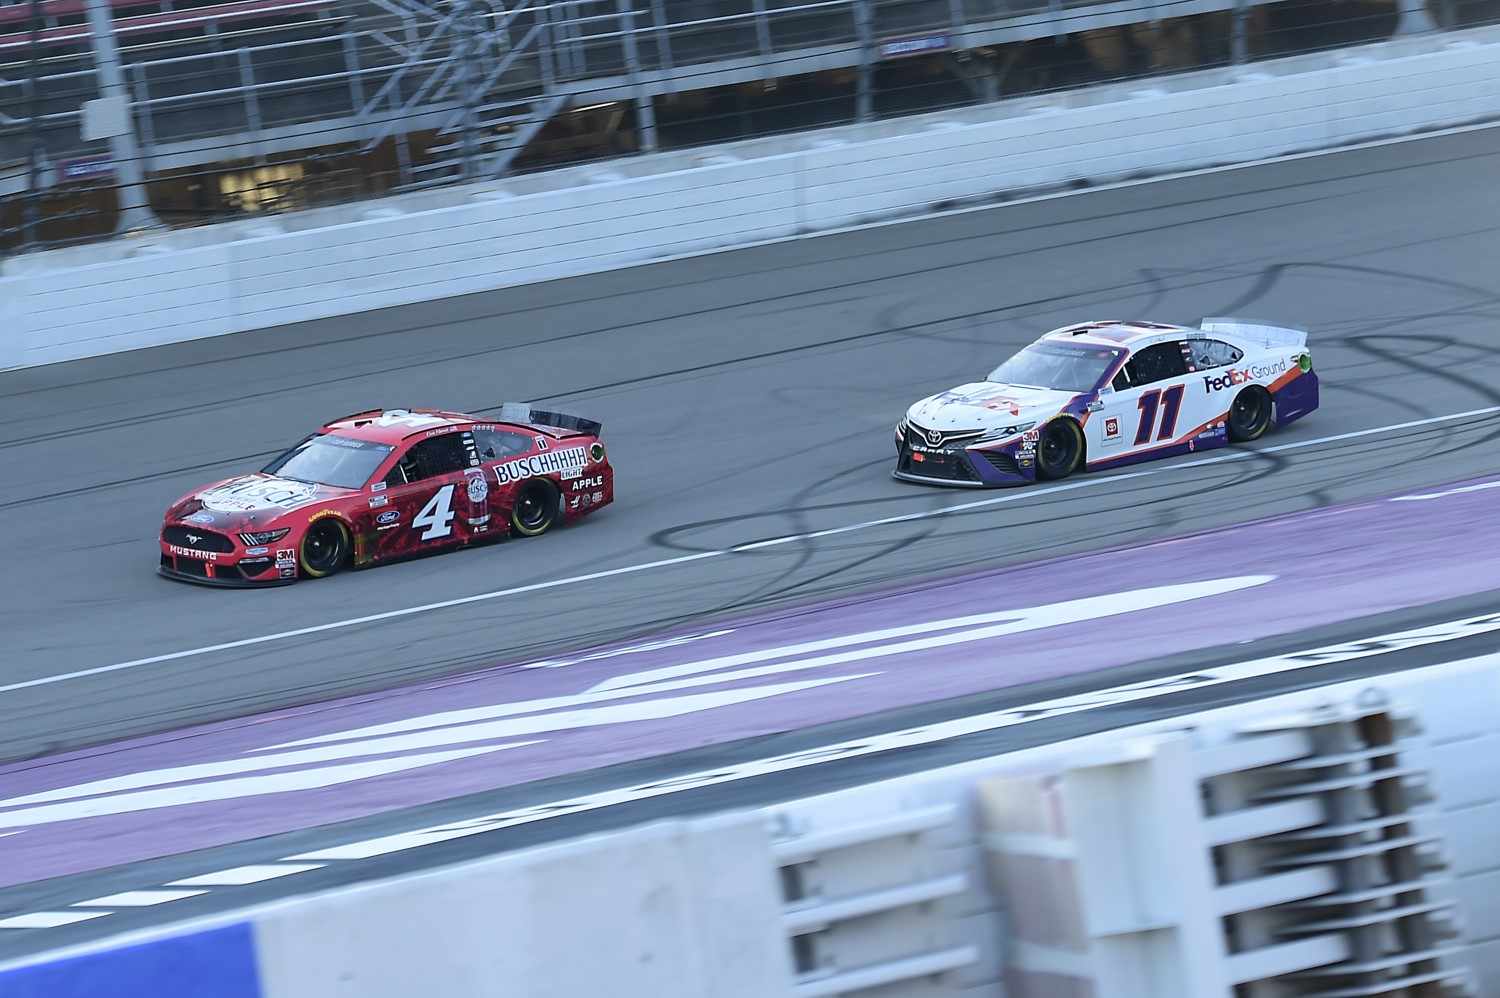 Harvick battles Hamlin for win